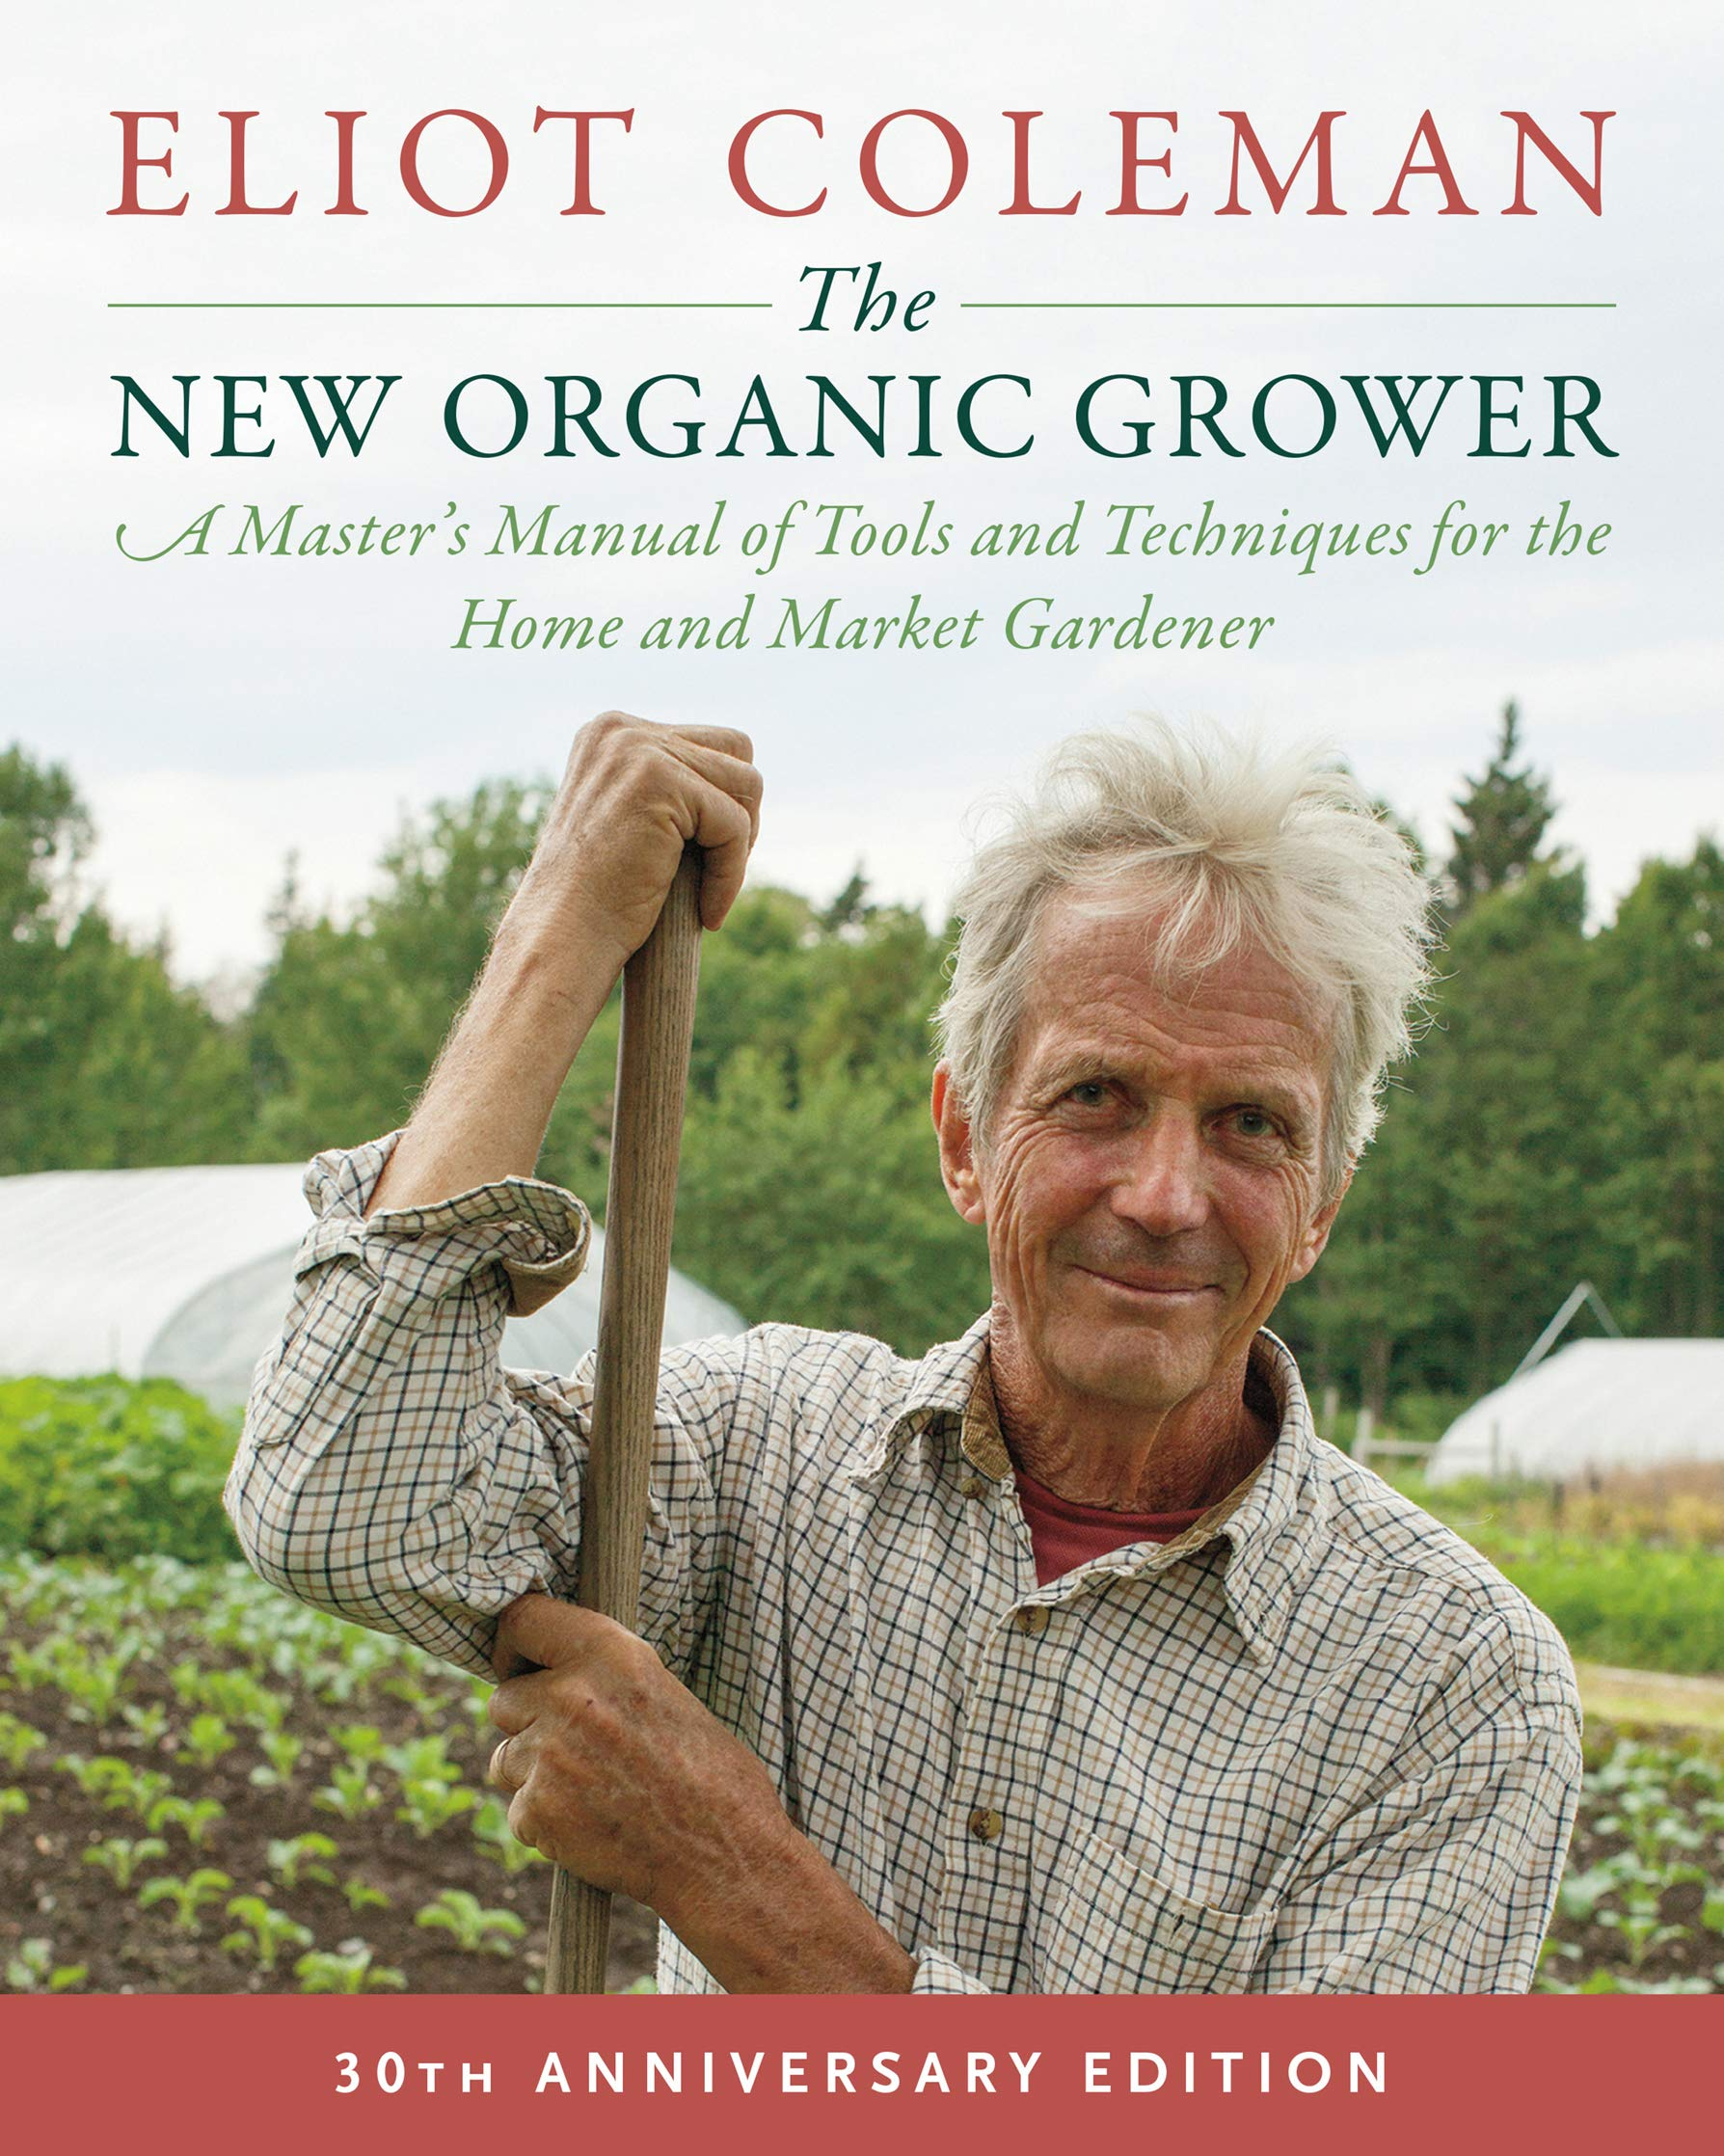 The New Organic Grower 3rd Edition  A Master's Manual Of Tools And Techniques For The Home And Market Gardener 30th Anniversary Edition  English Edition